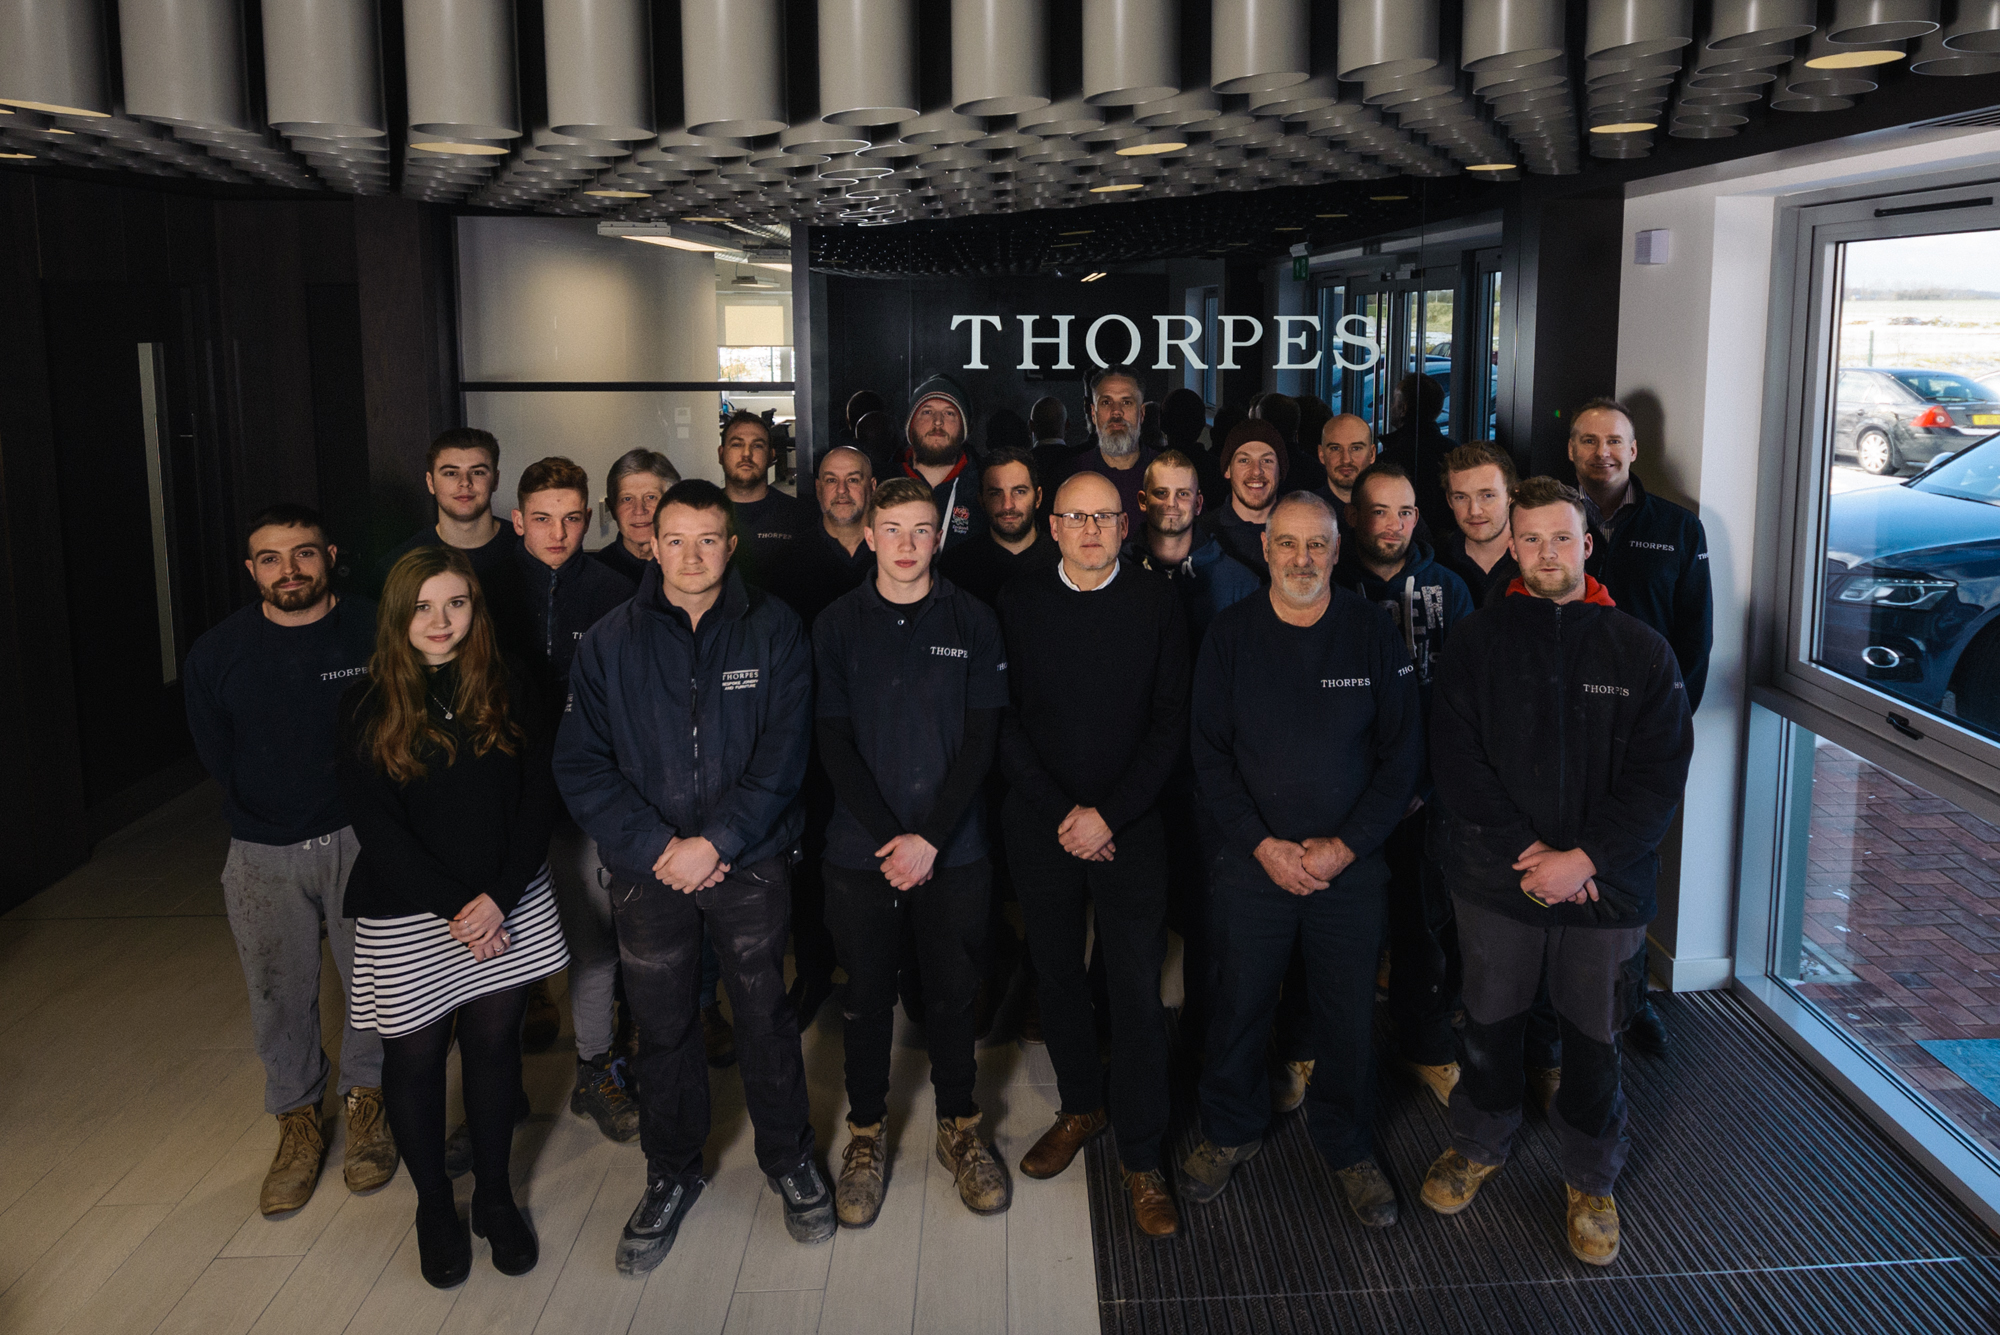 Apprentices_Thorpes-17.jpg